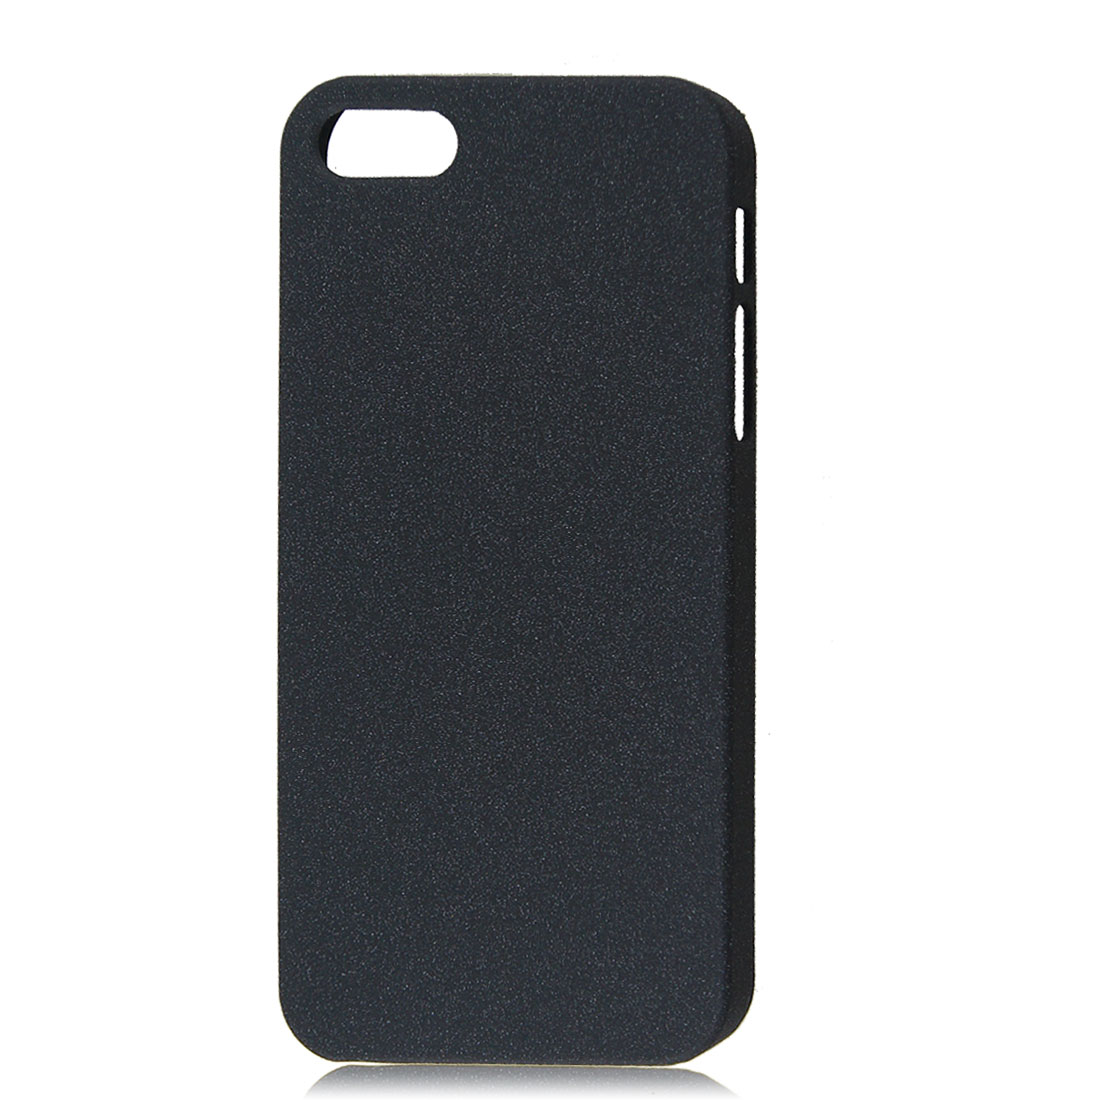 Hard Back Case Protective Cover Black for iPhone 5 5G 5th